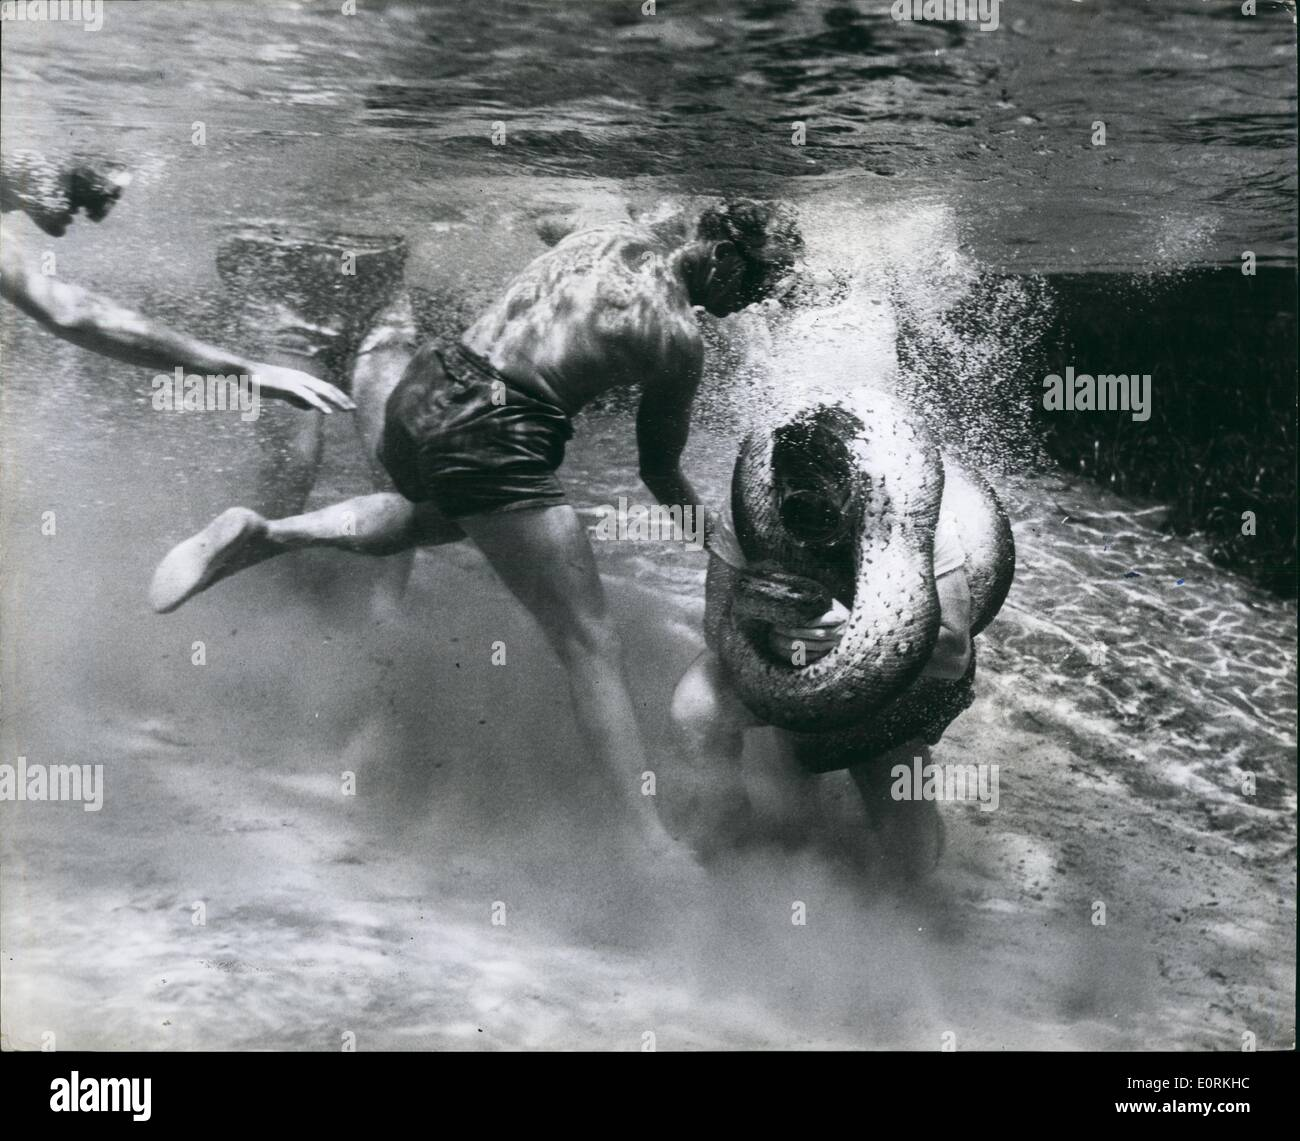 Jan 1, 1960 - Man versus Anaconda - underwater. Most fantastic battle of a lifetime: Horror registered grimly on the face of a small group of spectators as Ross Allen as 50 year old American Naturalist proceeded on the maddest stunt of his life. wrestling with a killer Anaconda underwater. Never before the history of mankind has such a fantastic challenge taken place - Stock Image